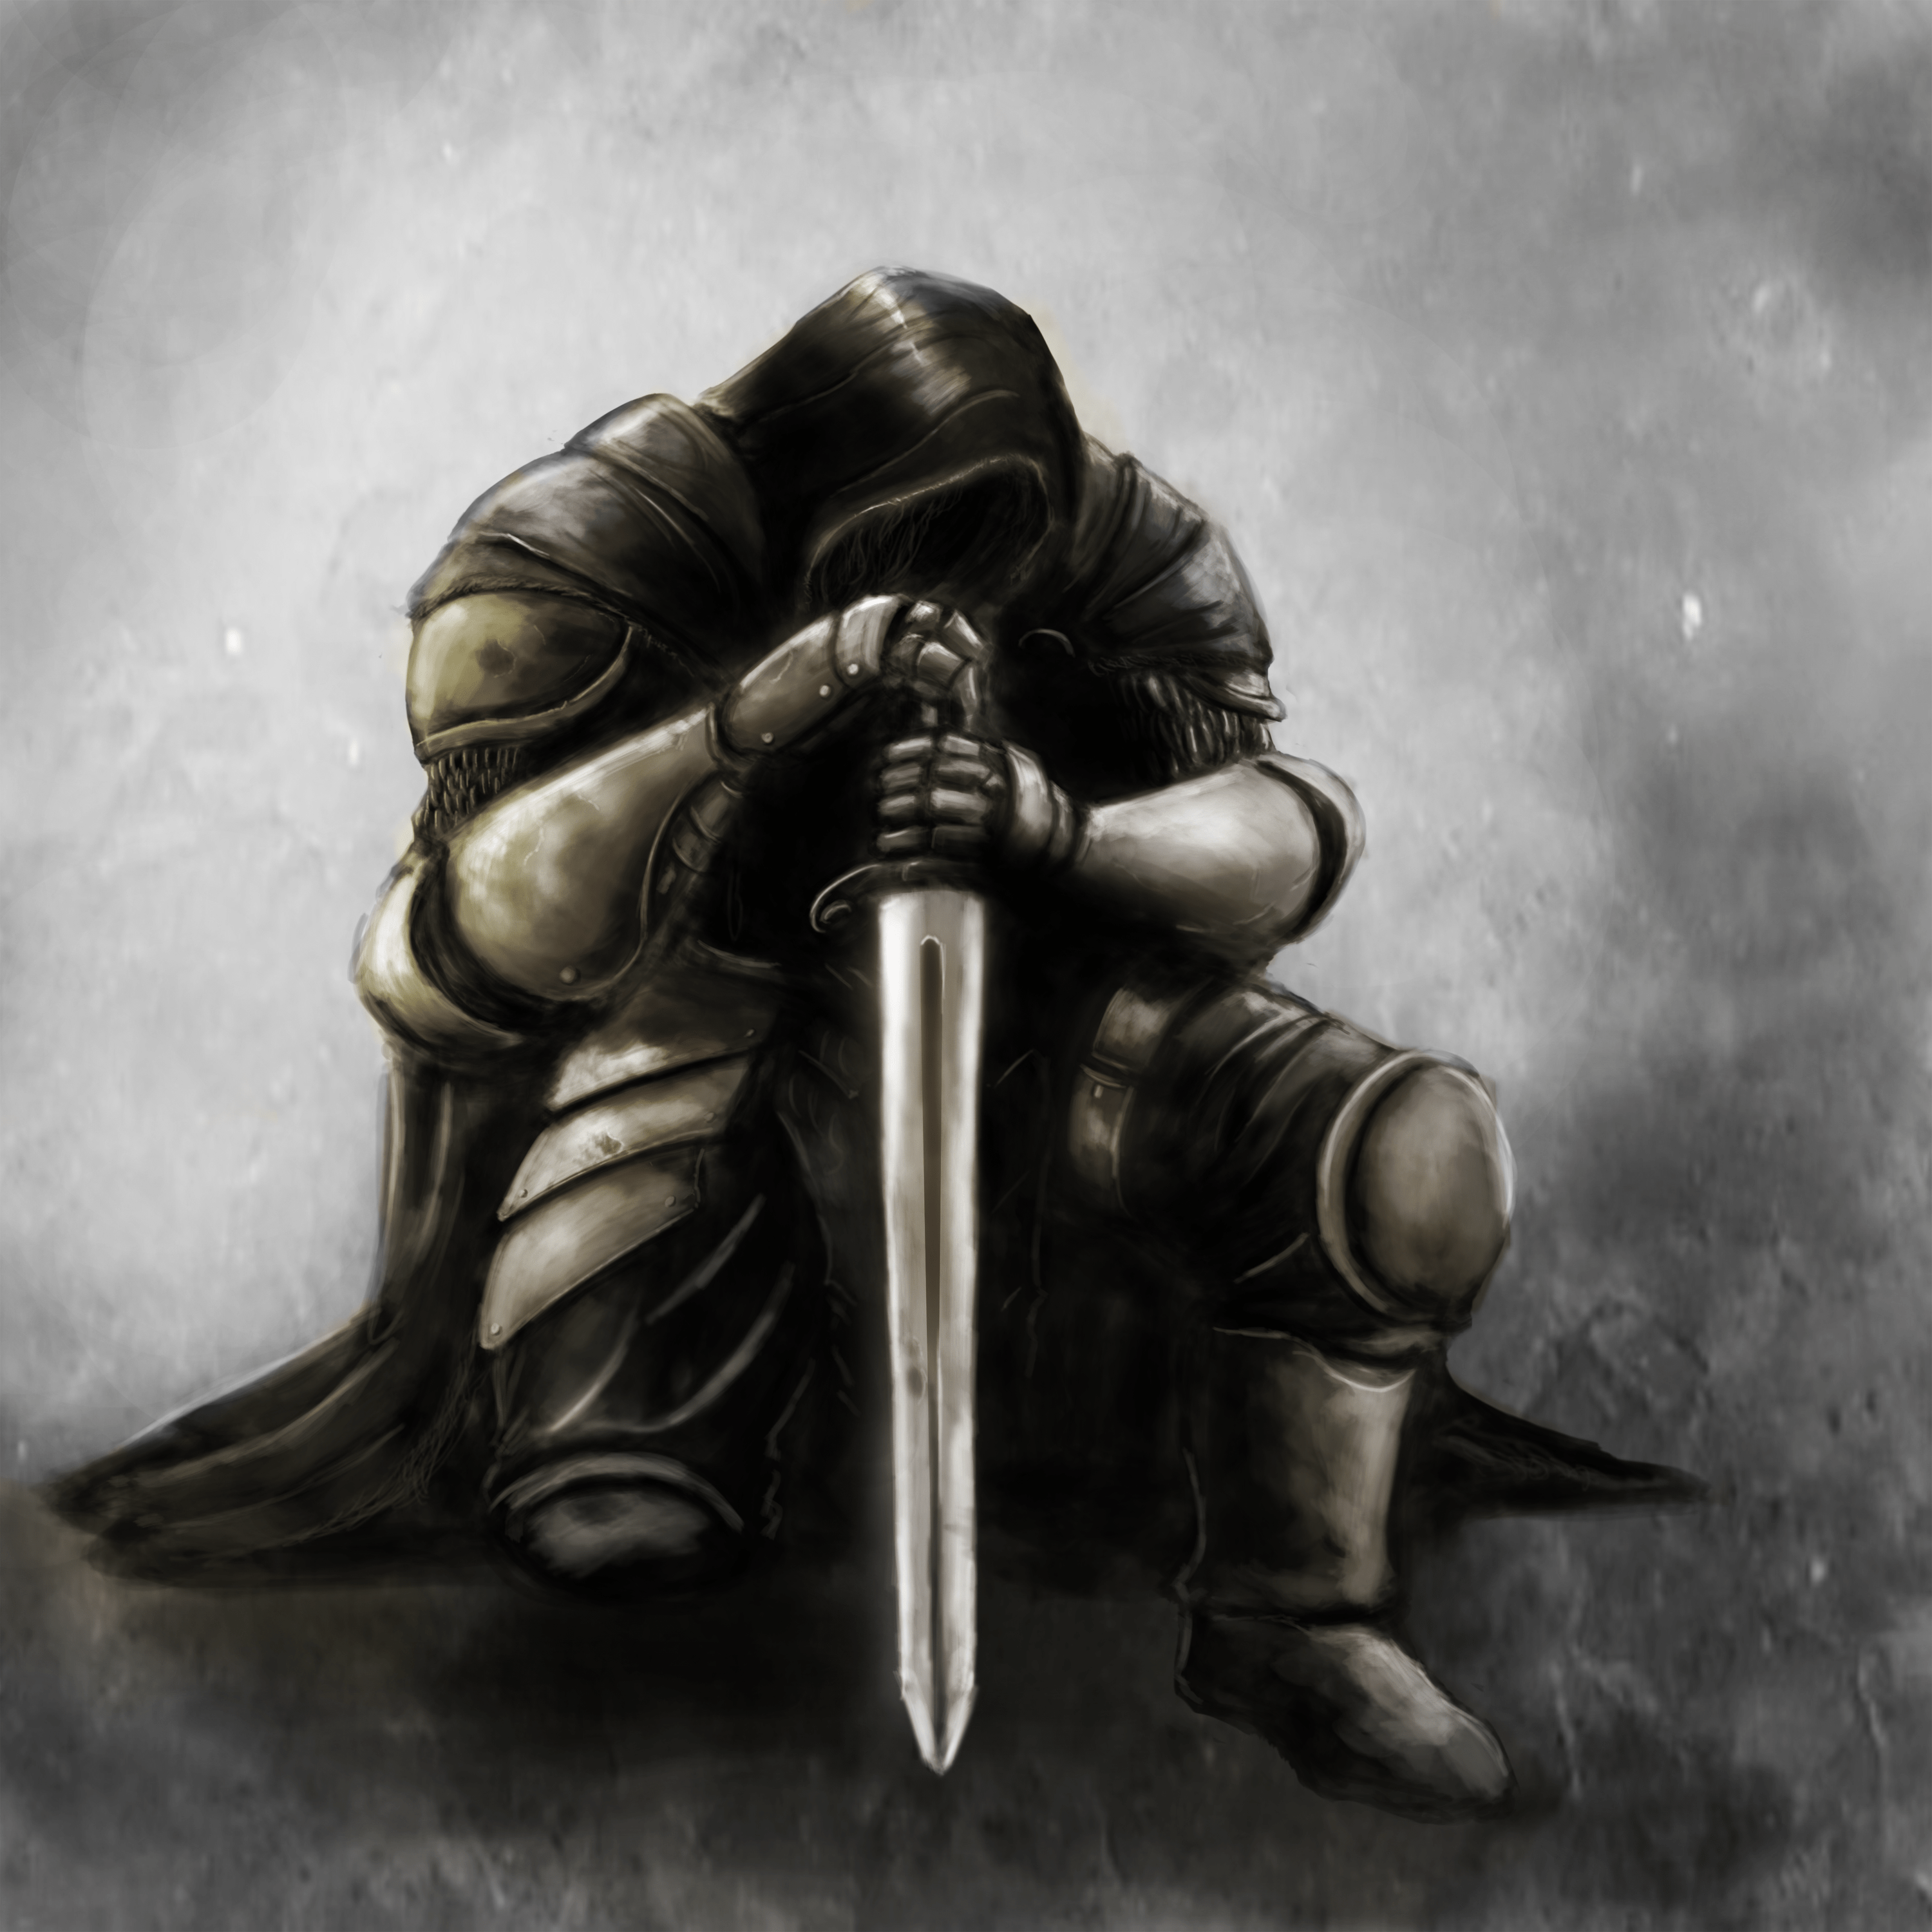 Kneeling Knight For The King